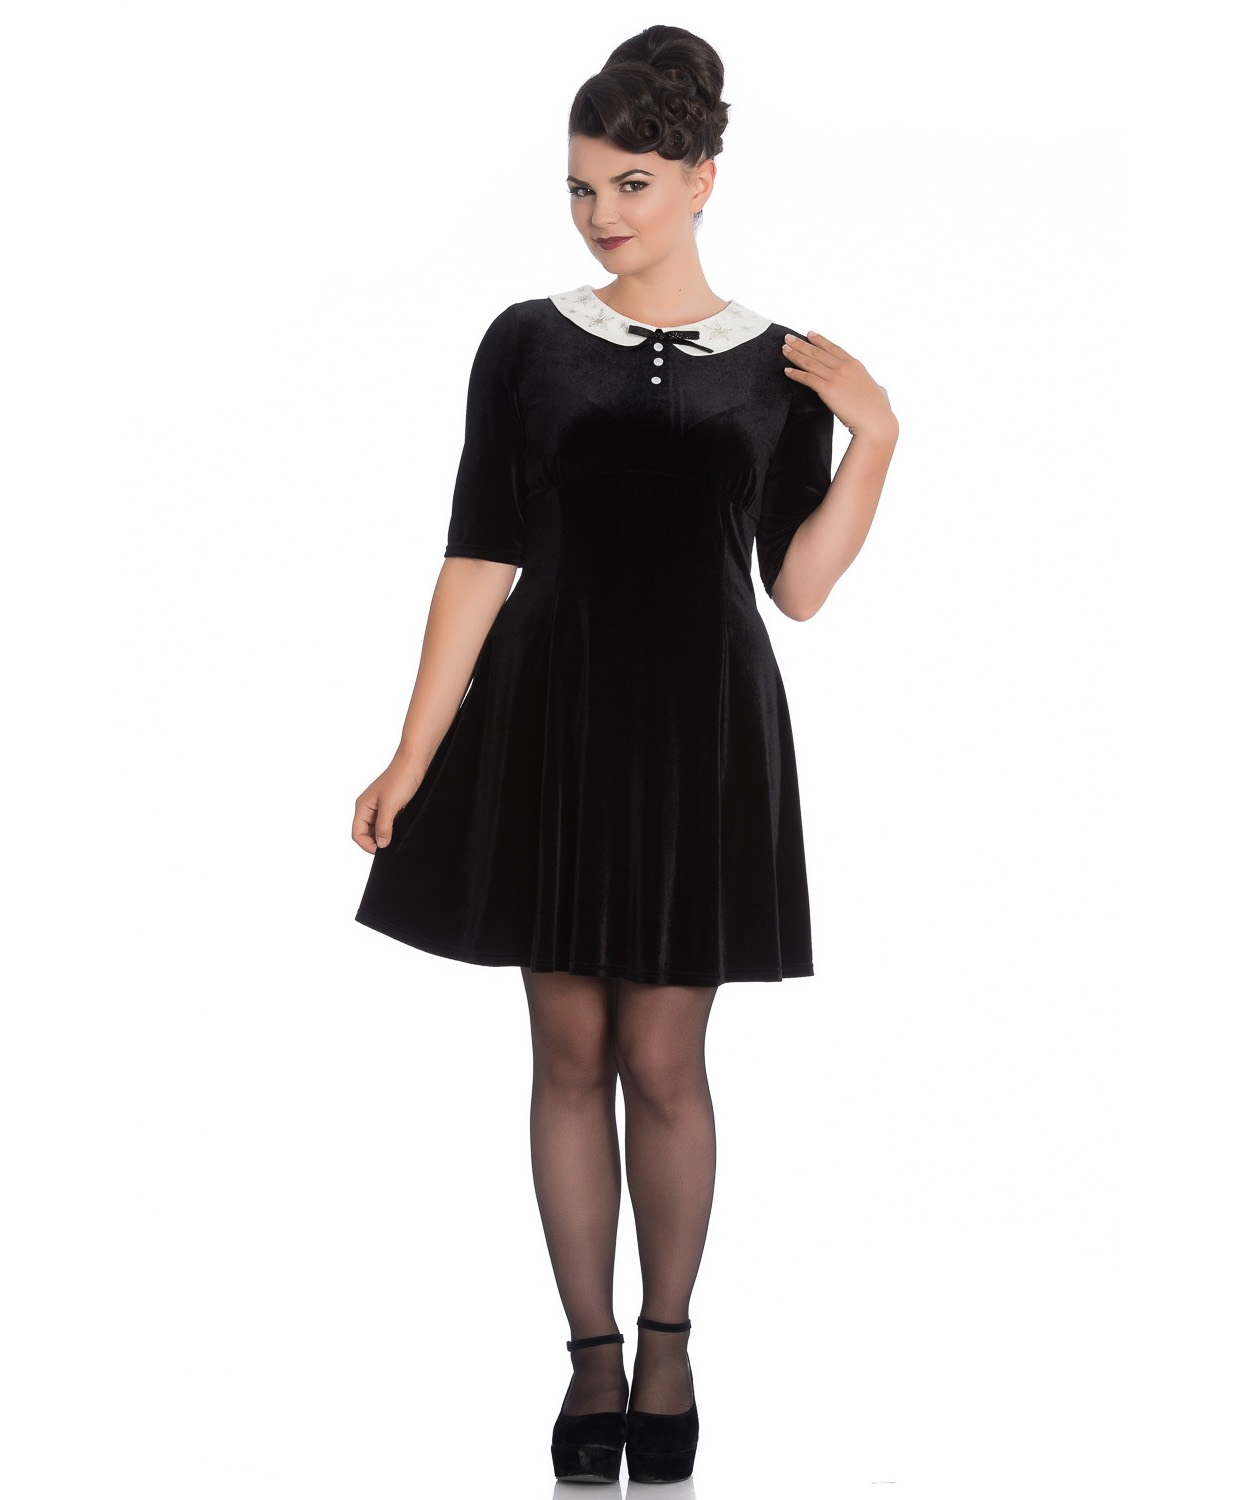 Hell-Bunny-Mini-Skater-Dress-Festive-Christmas-SNOWY-Black-Snowflakes-All-Sizes thumbnail 7